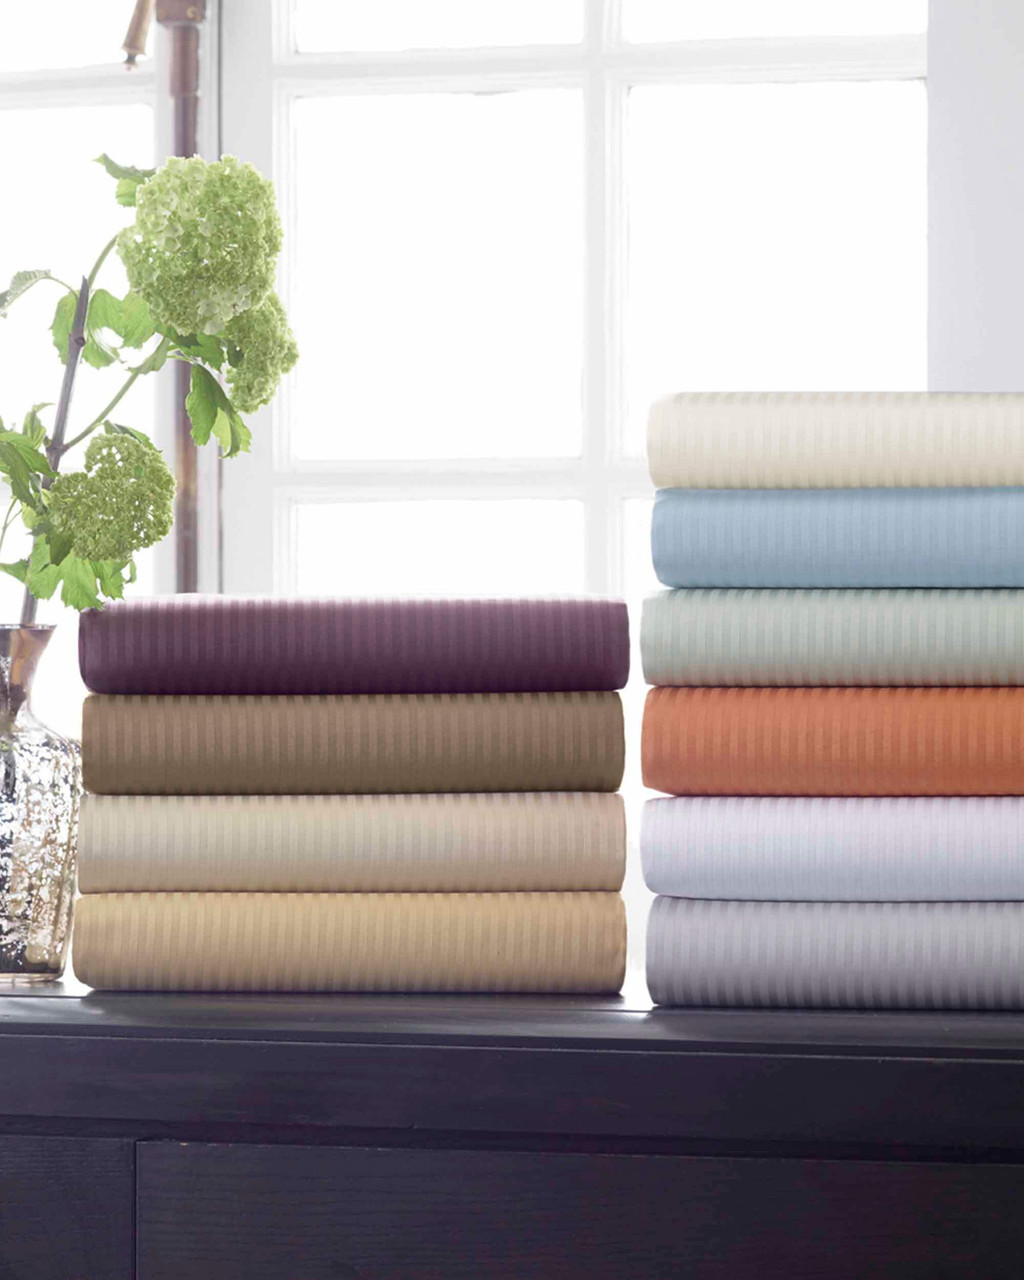 Savoia Flat Sheets by Scandia Home